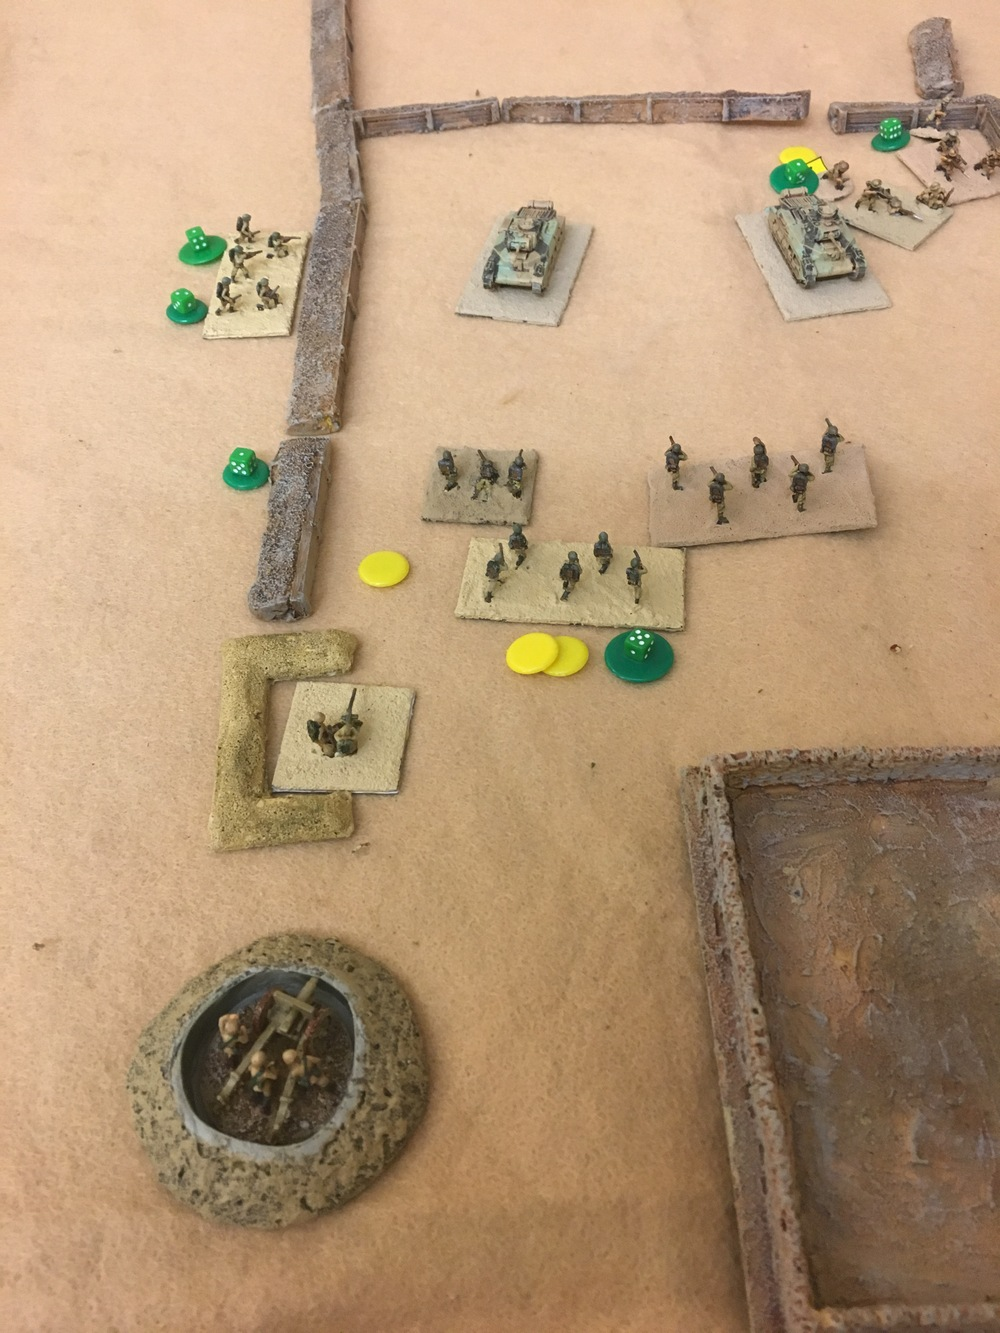 A lot has happened this turn with the Italians making their unsuccessful charge. The remain of three sections have been thrown back to a less than ideal position in front of the tanks.